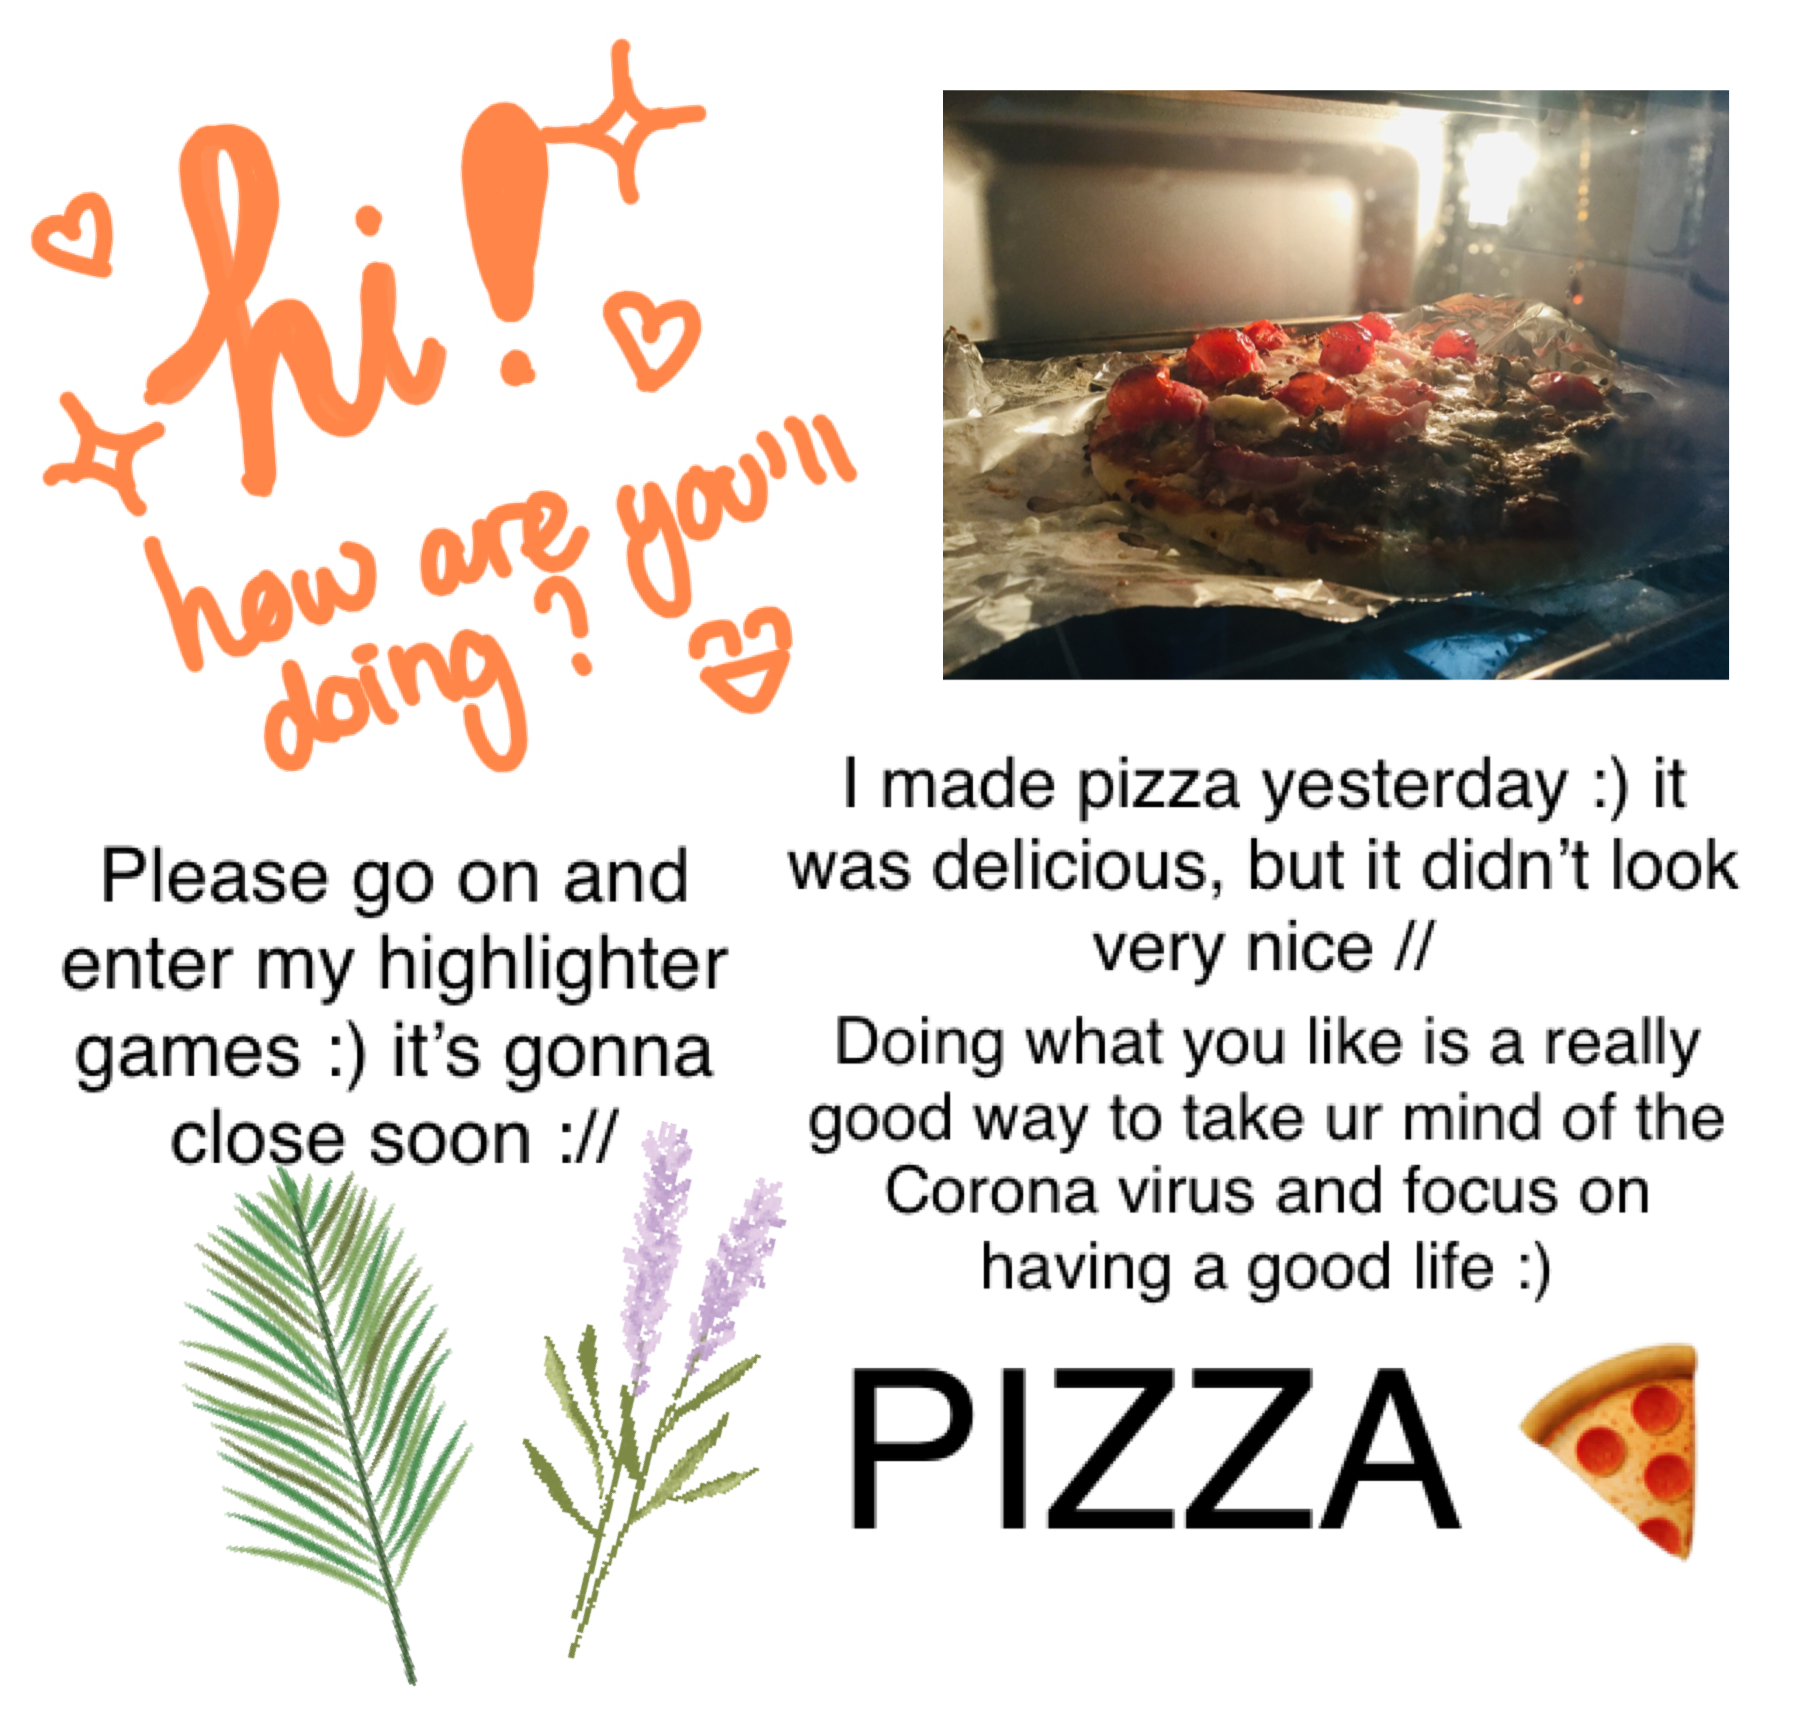 Yay! I luv pizza :) does any of u also like pizza? If u do, comment a 🤤🍕